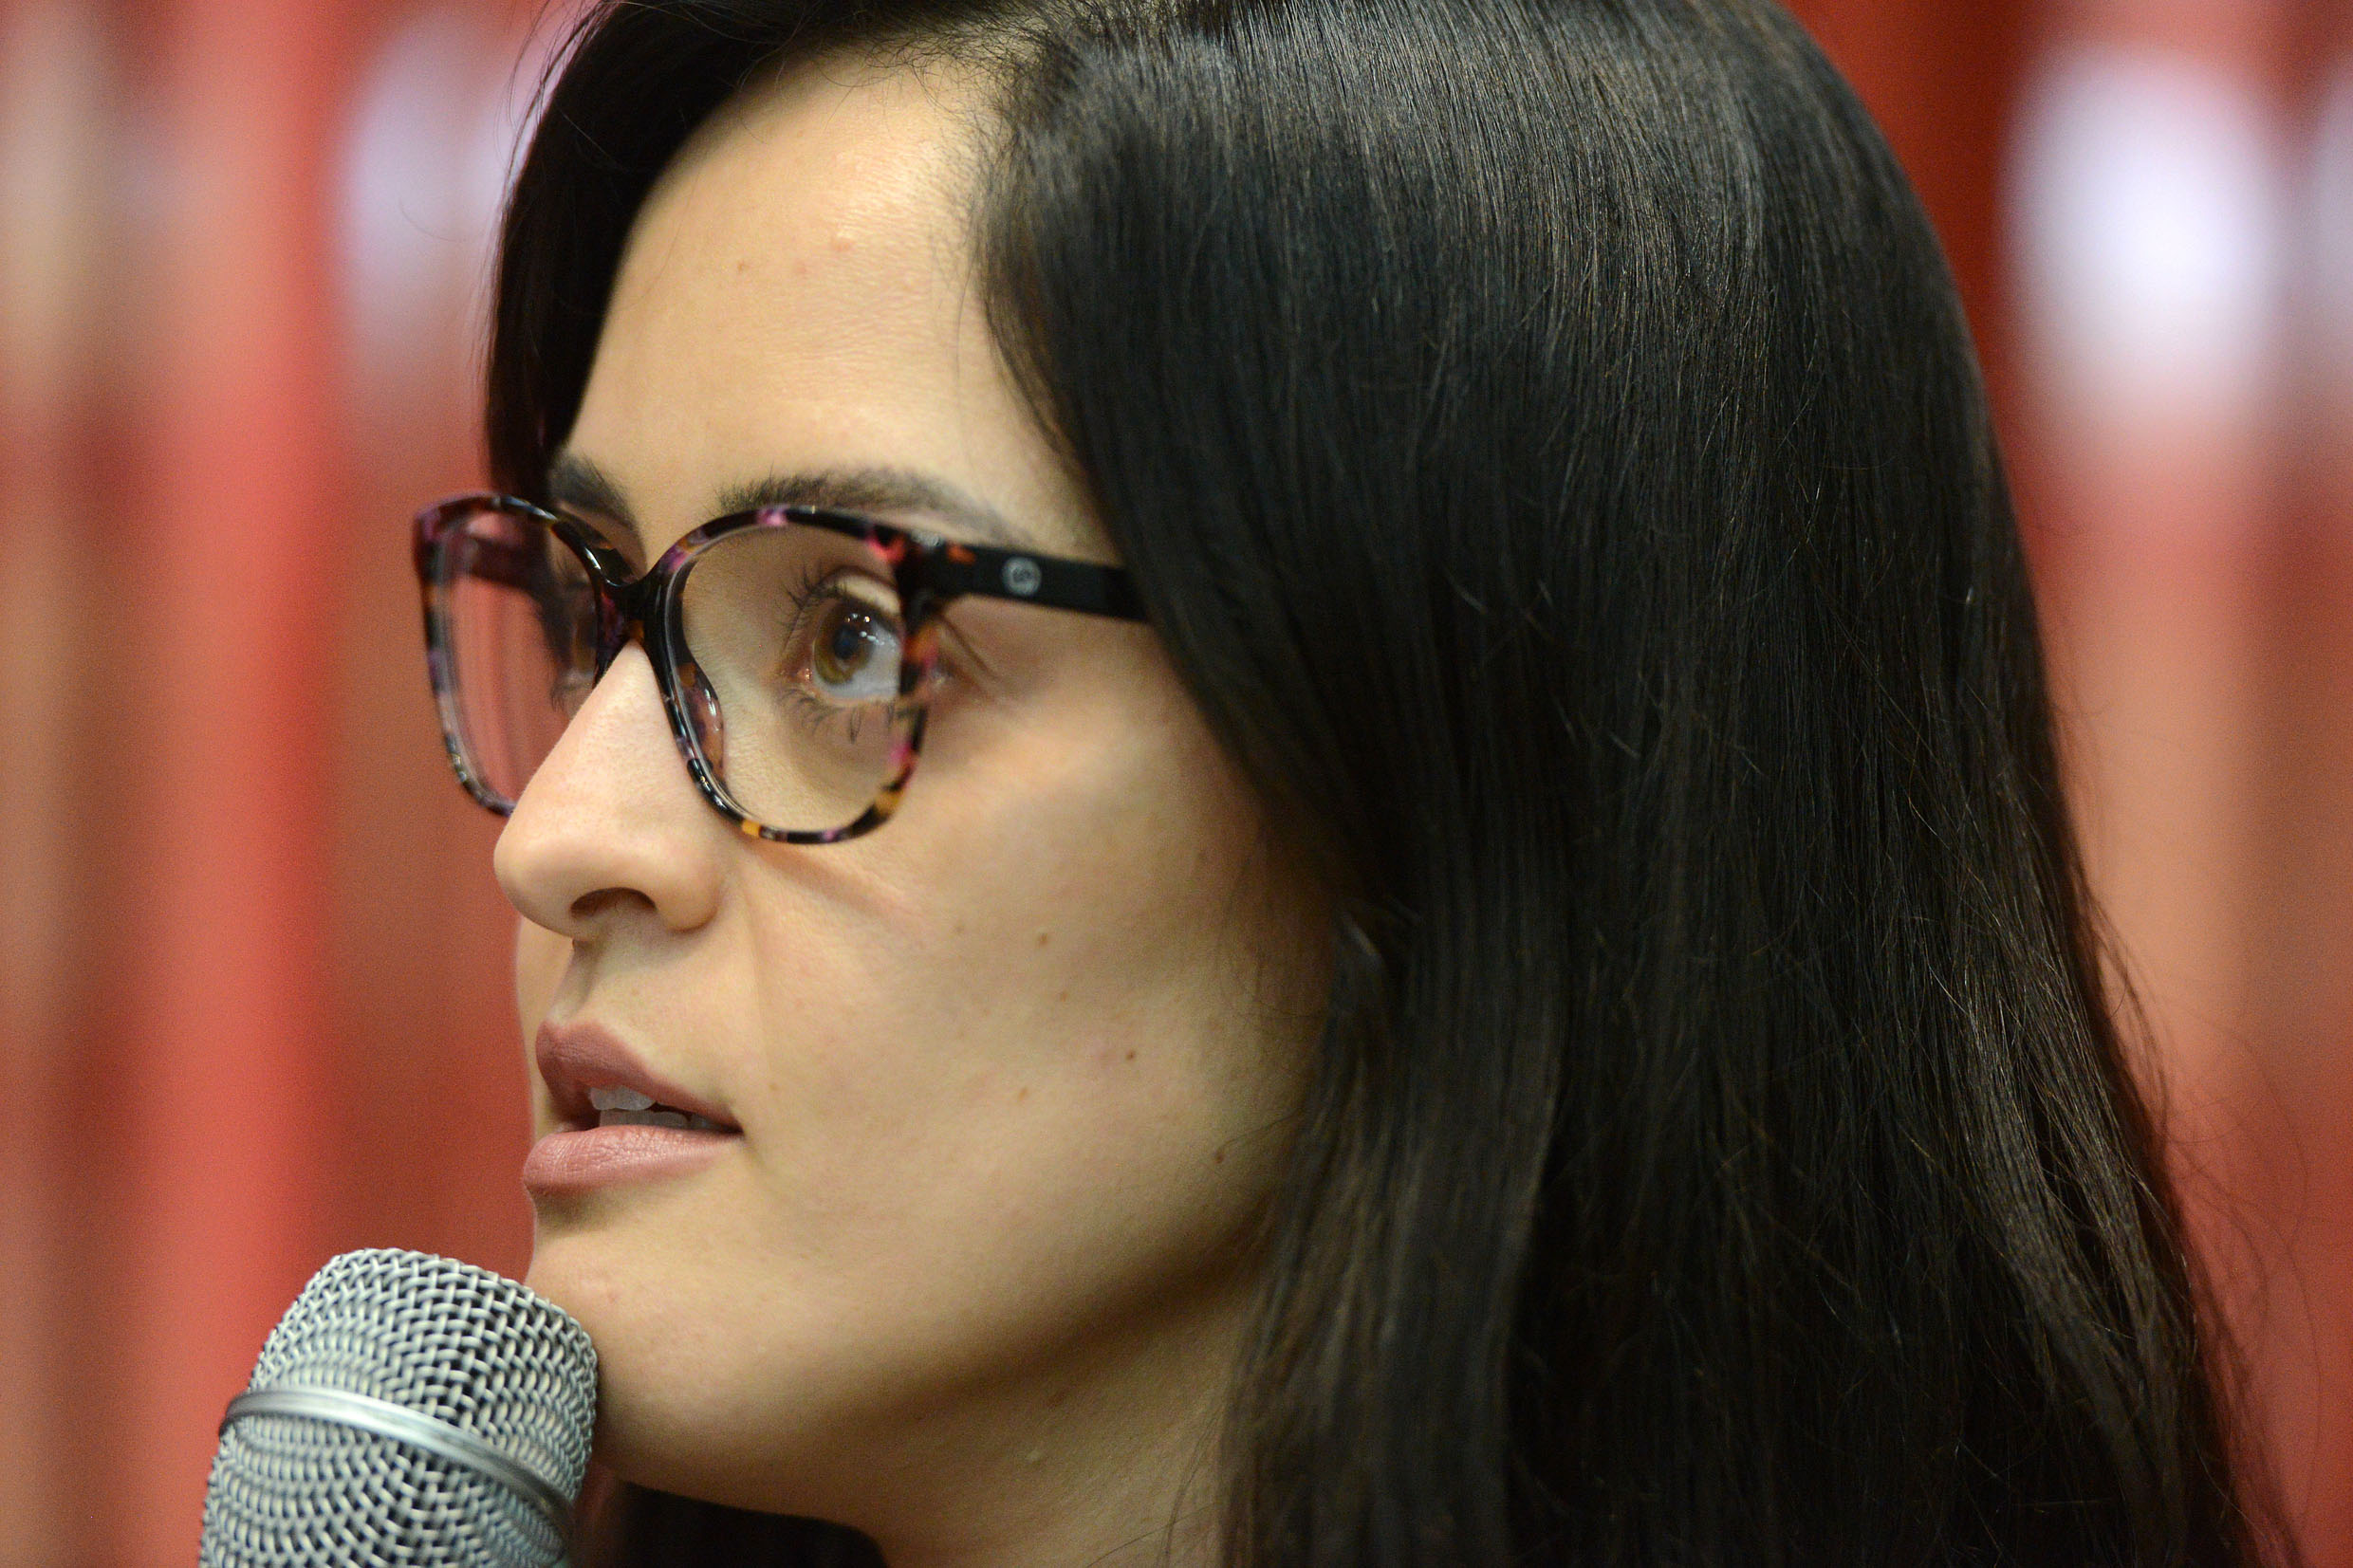 Isabela Mazão<a style='float:right' href='https://www3.al.sp.gov.br/repositorio/noticia/N-11-2017/fg213952.jpg' target=_blank><img src='/_img/material-file-download-white.png' width='14px' alt='Clique para baixar a imagem'></a>